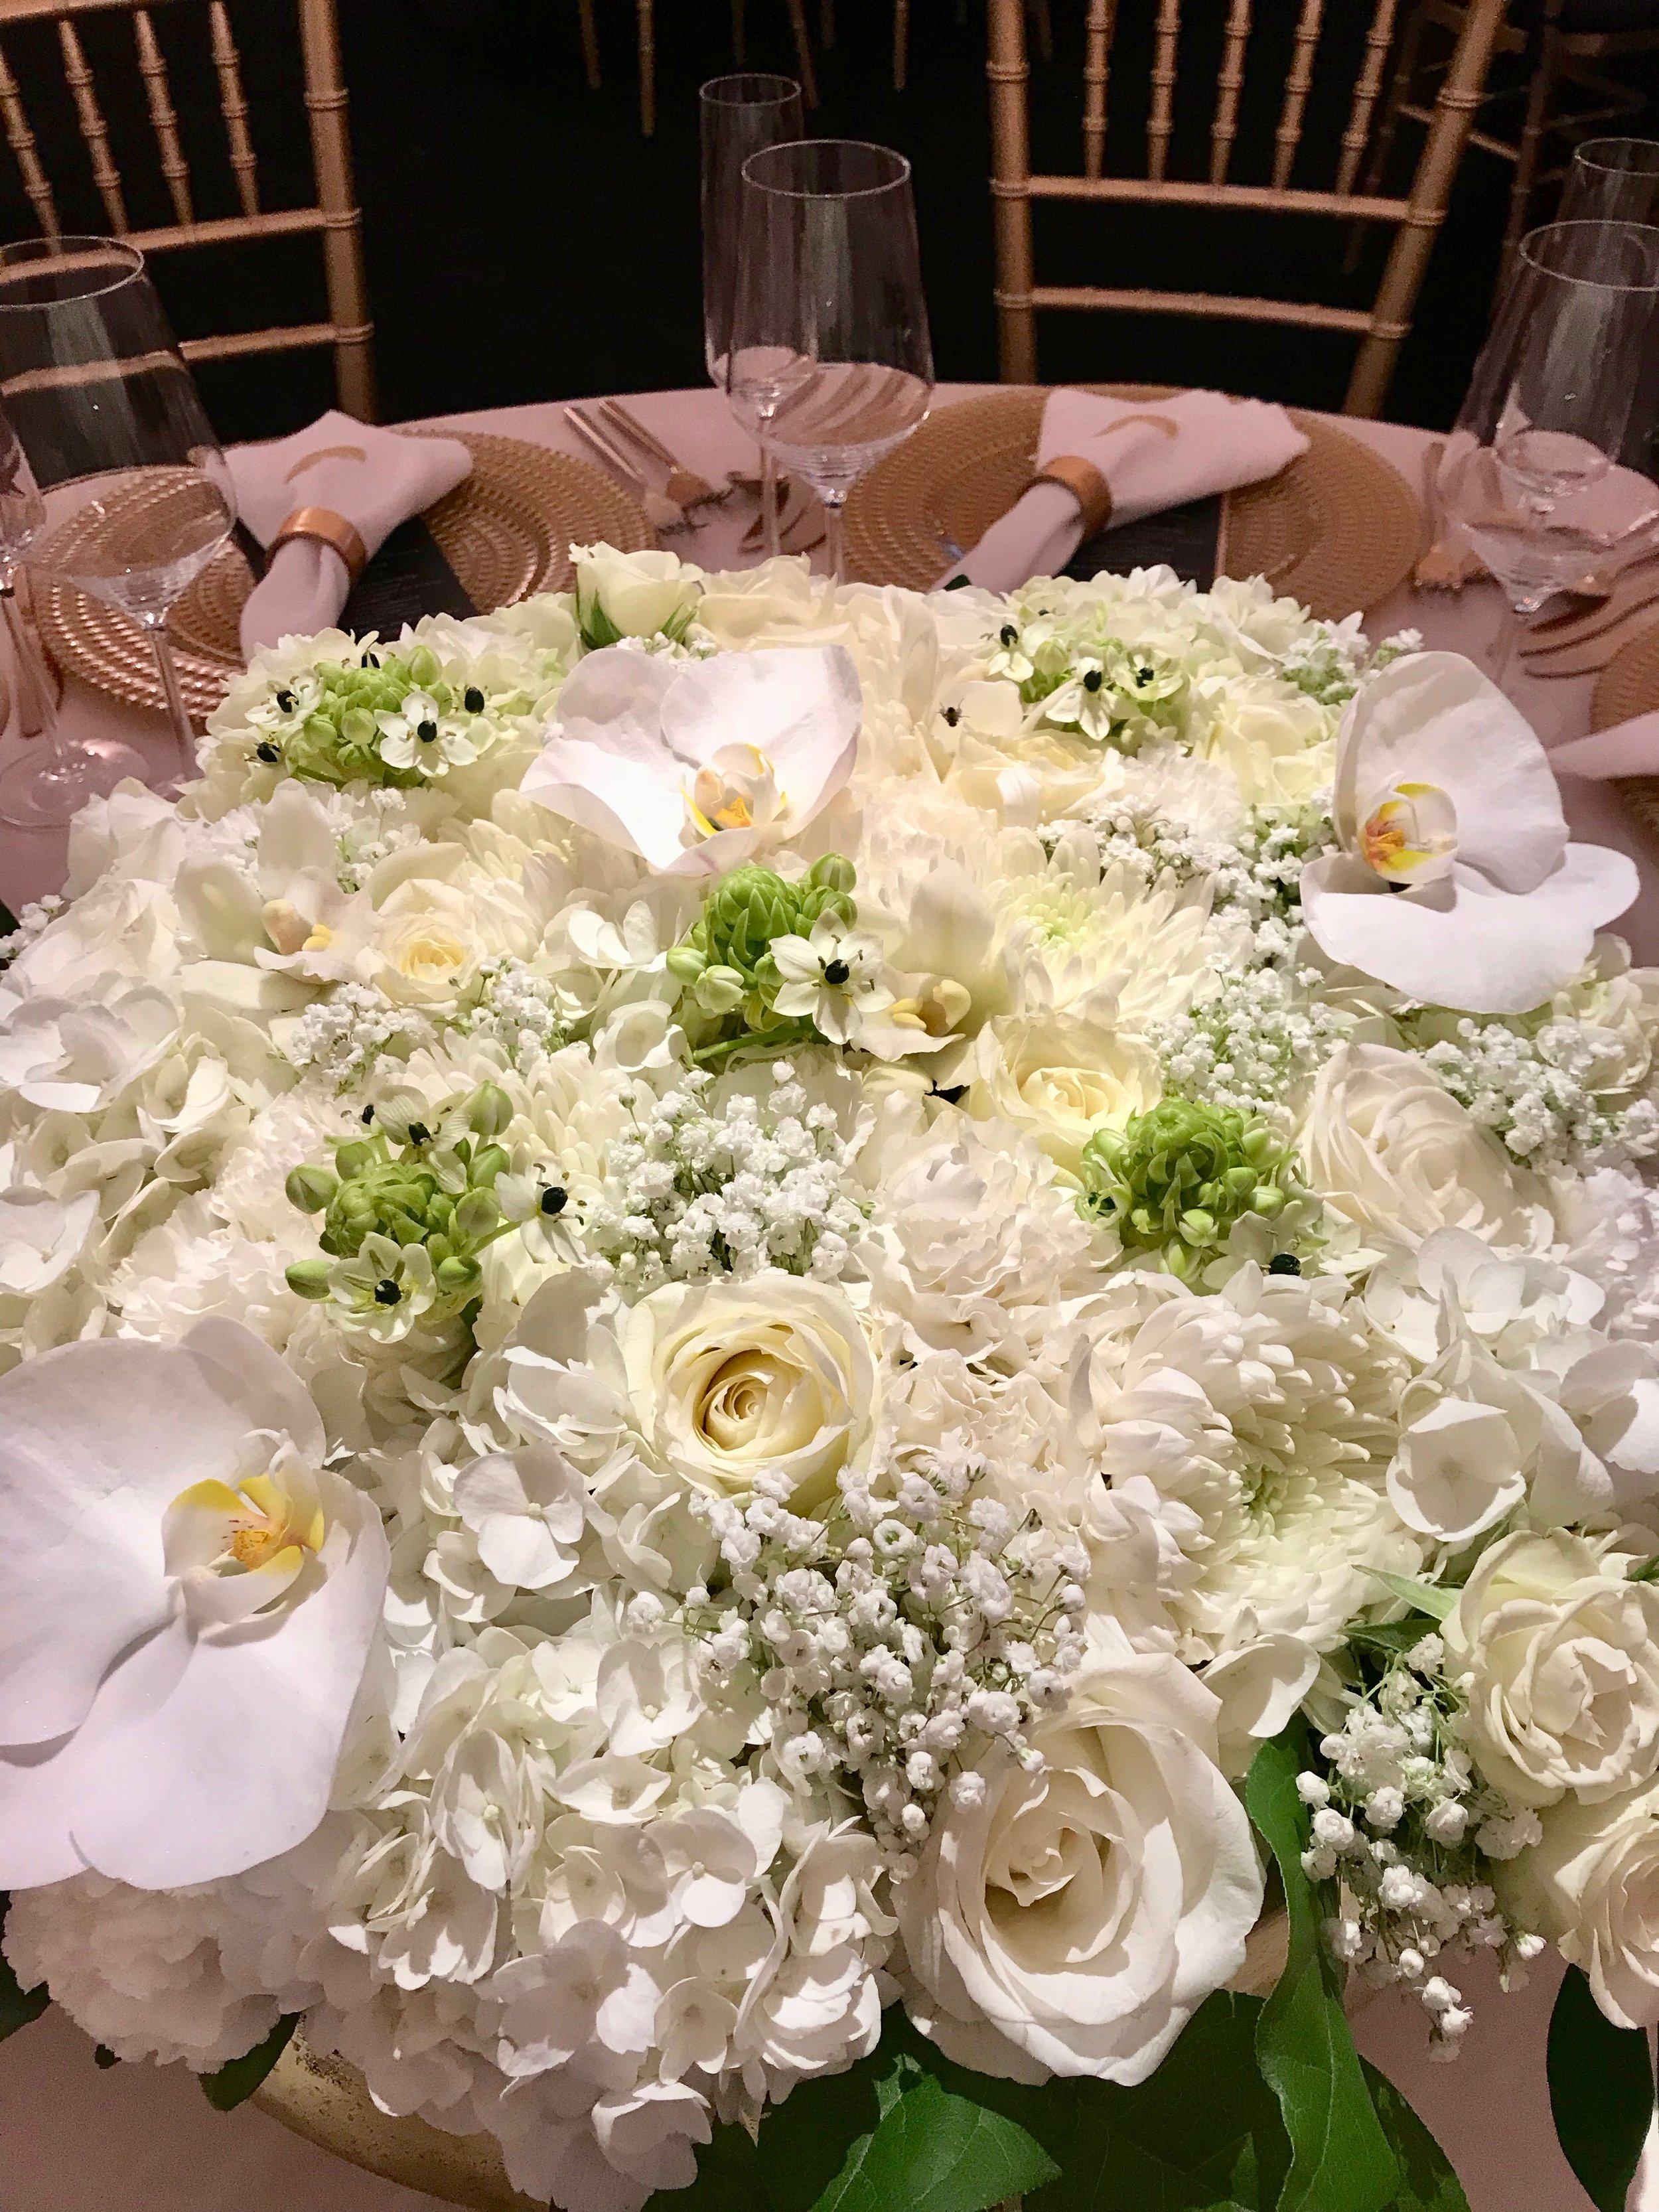 White and green low table arrangement for black tie tented wedding reception